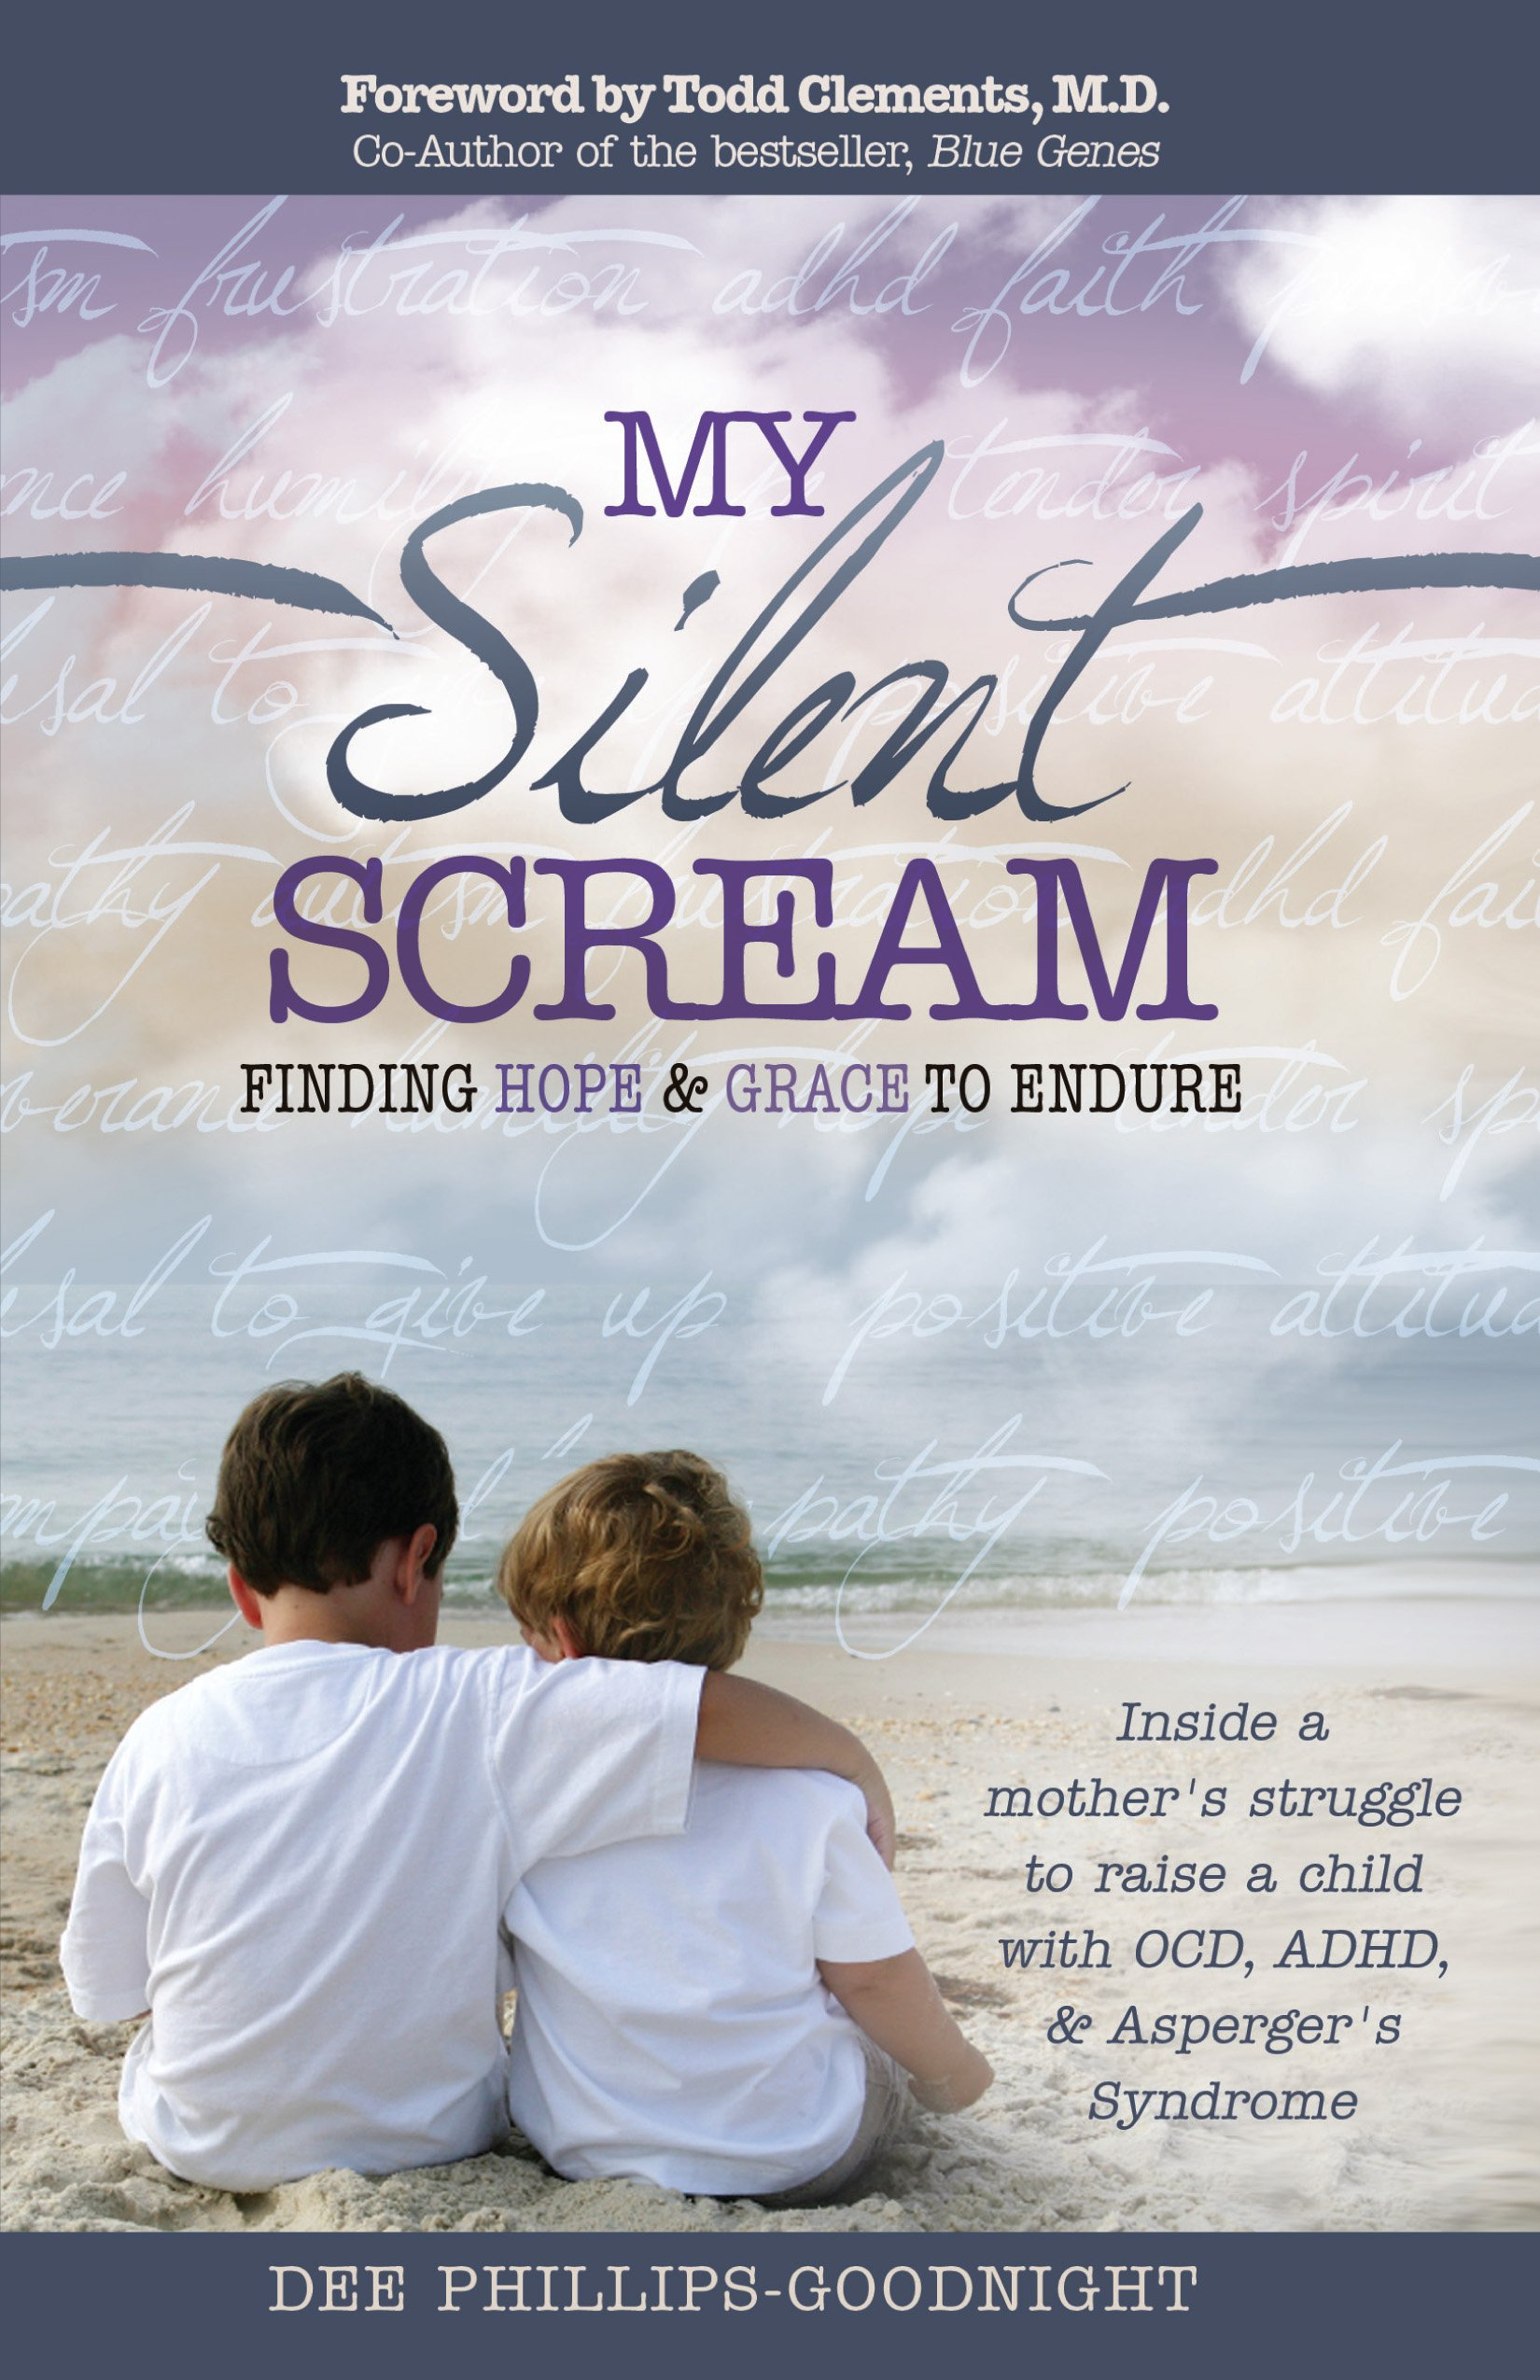 My Silent Scream: Finding Hope & Grace to Endure